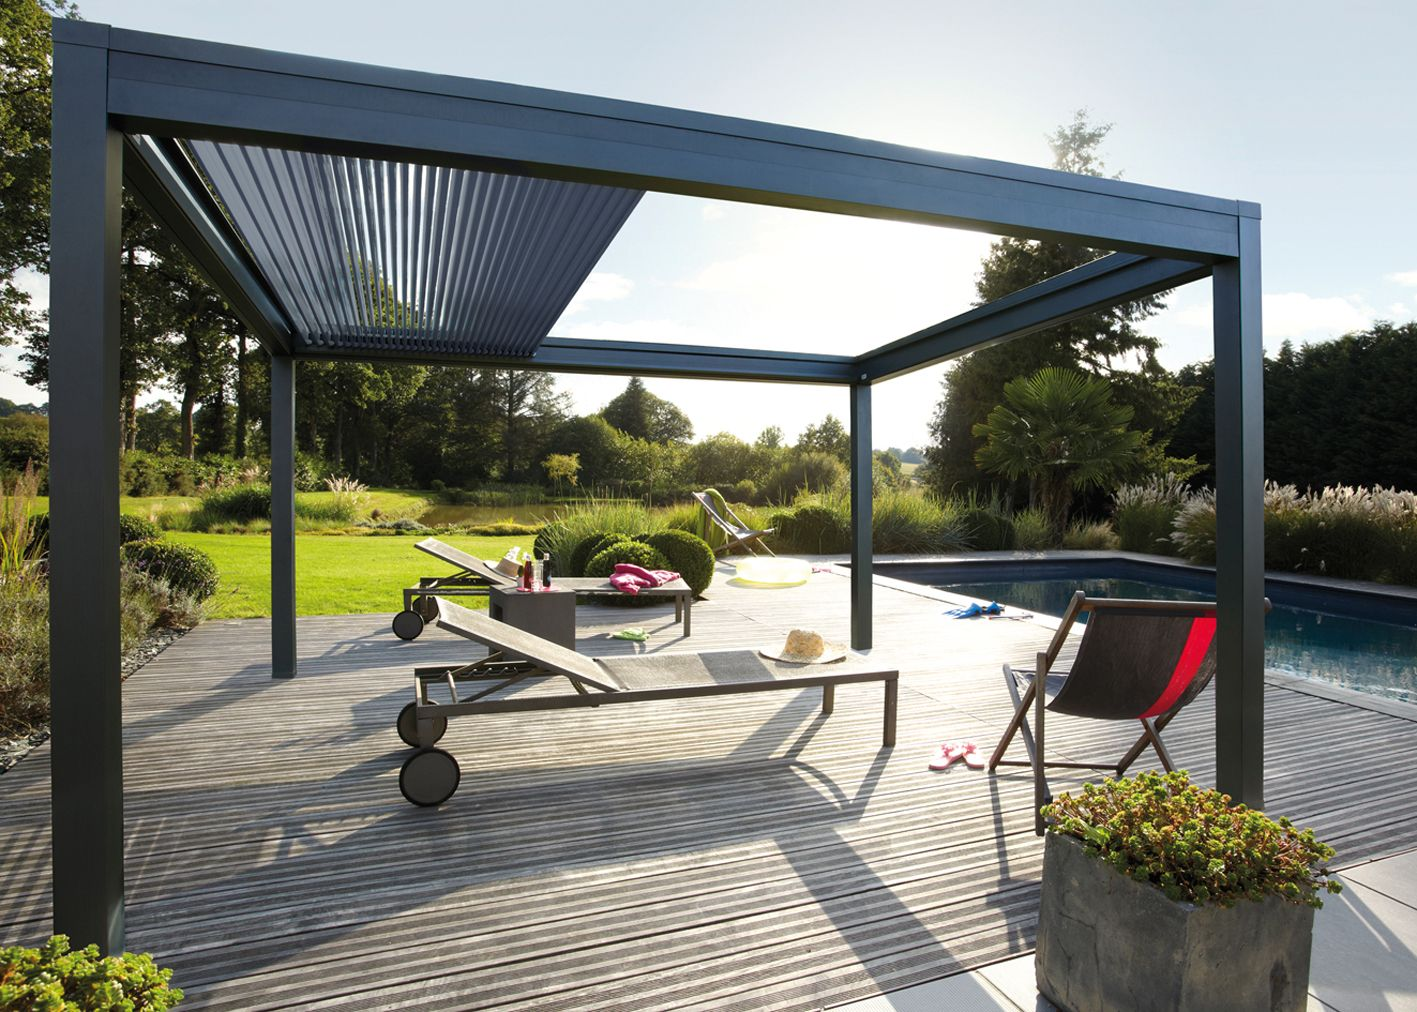 Charming Pergola Bioclimatique Retractable Pergoklim De Soliso